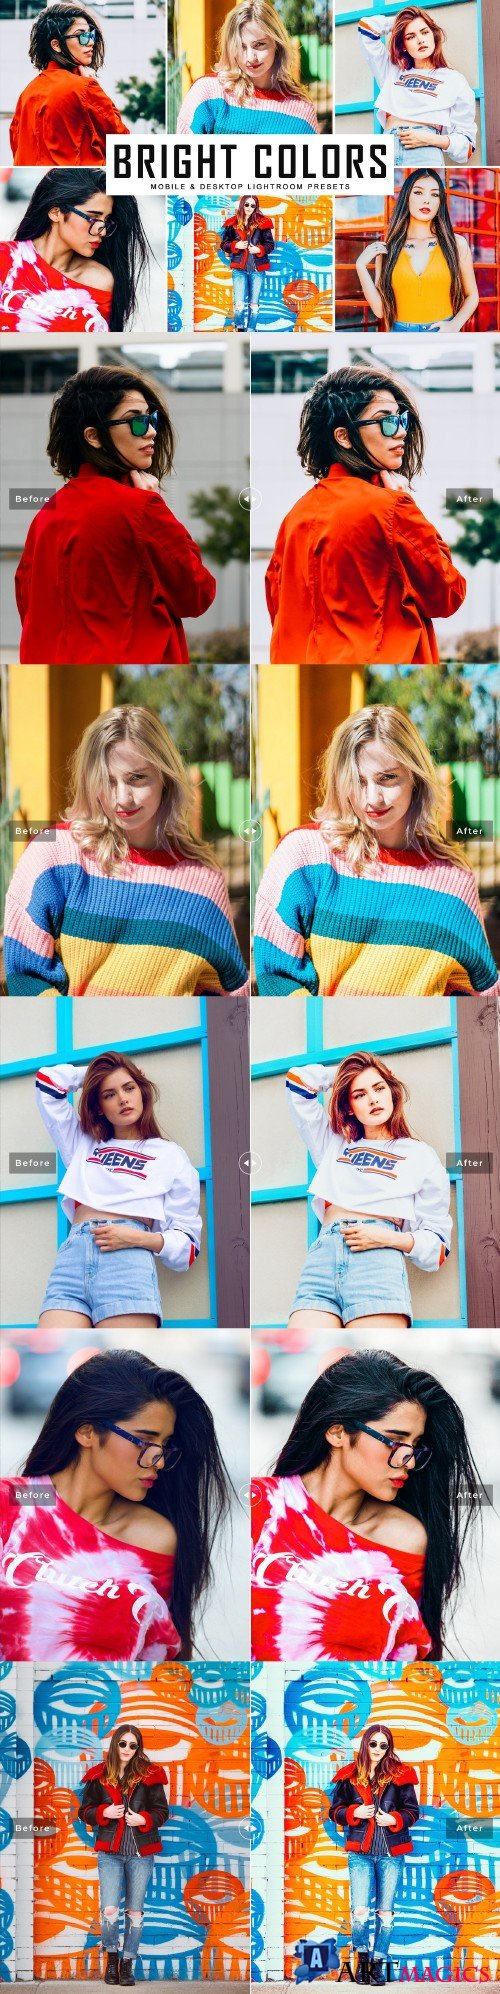 Bright Colors Lightroom Presets - 3967258